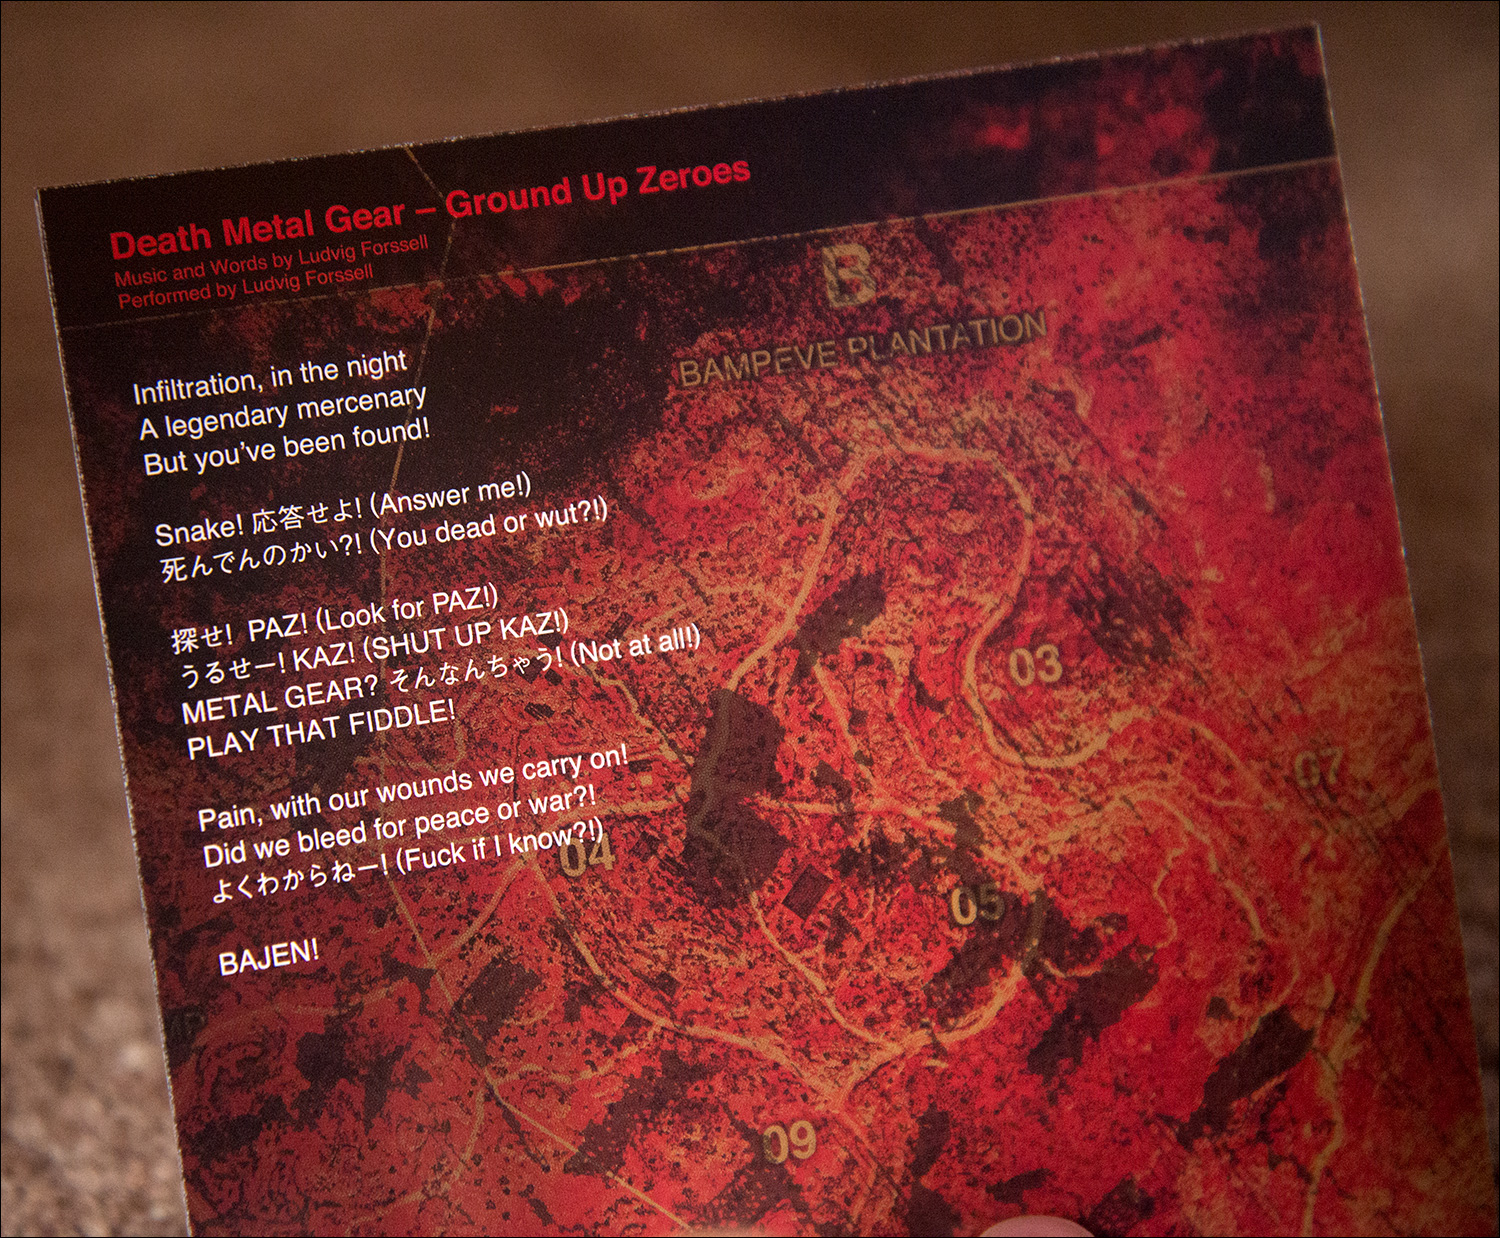 Metal-Gear-Solid-V-The-Lost-Tapes-Booklet-Death-Metal-Gear-Lyrics